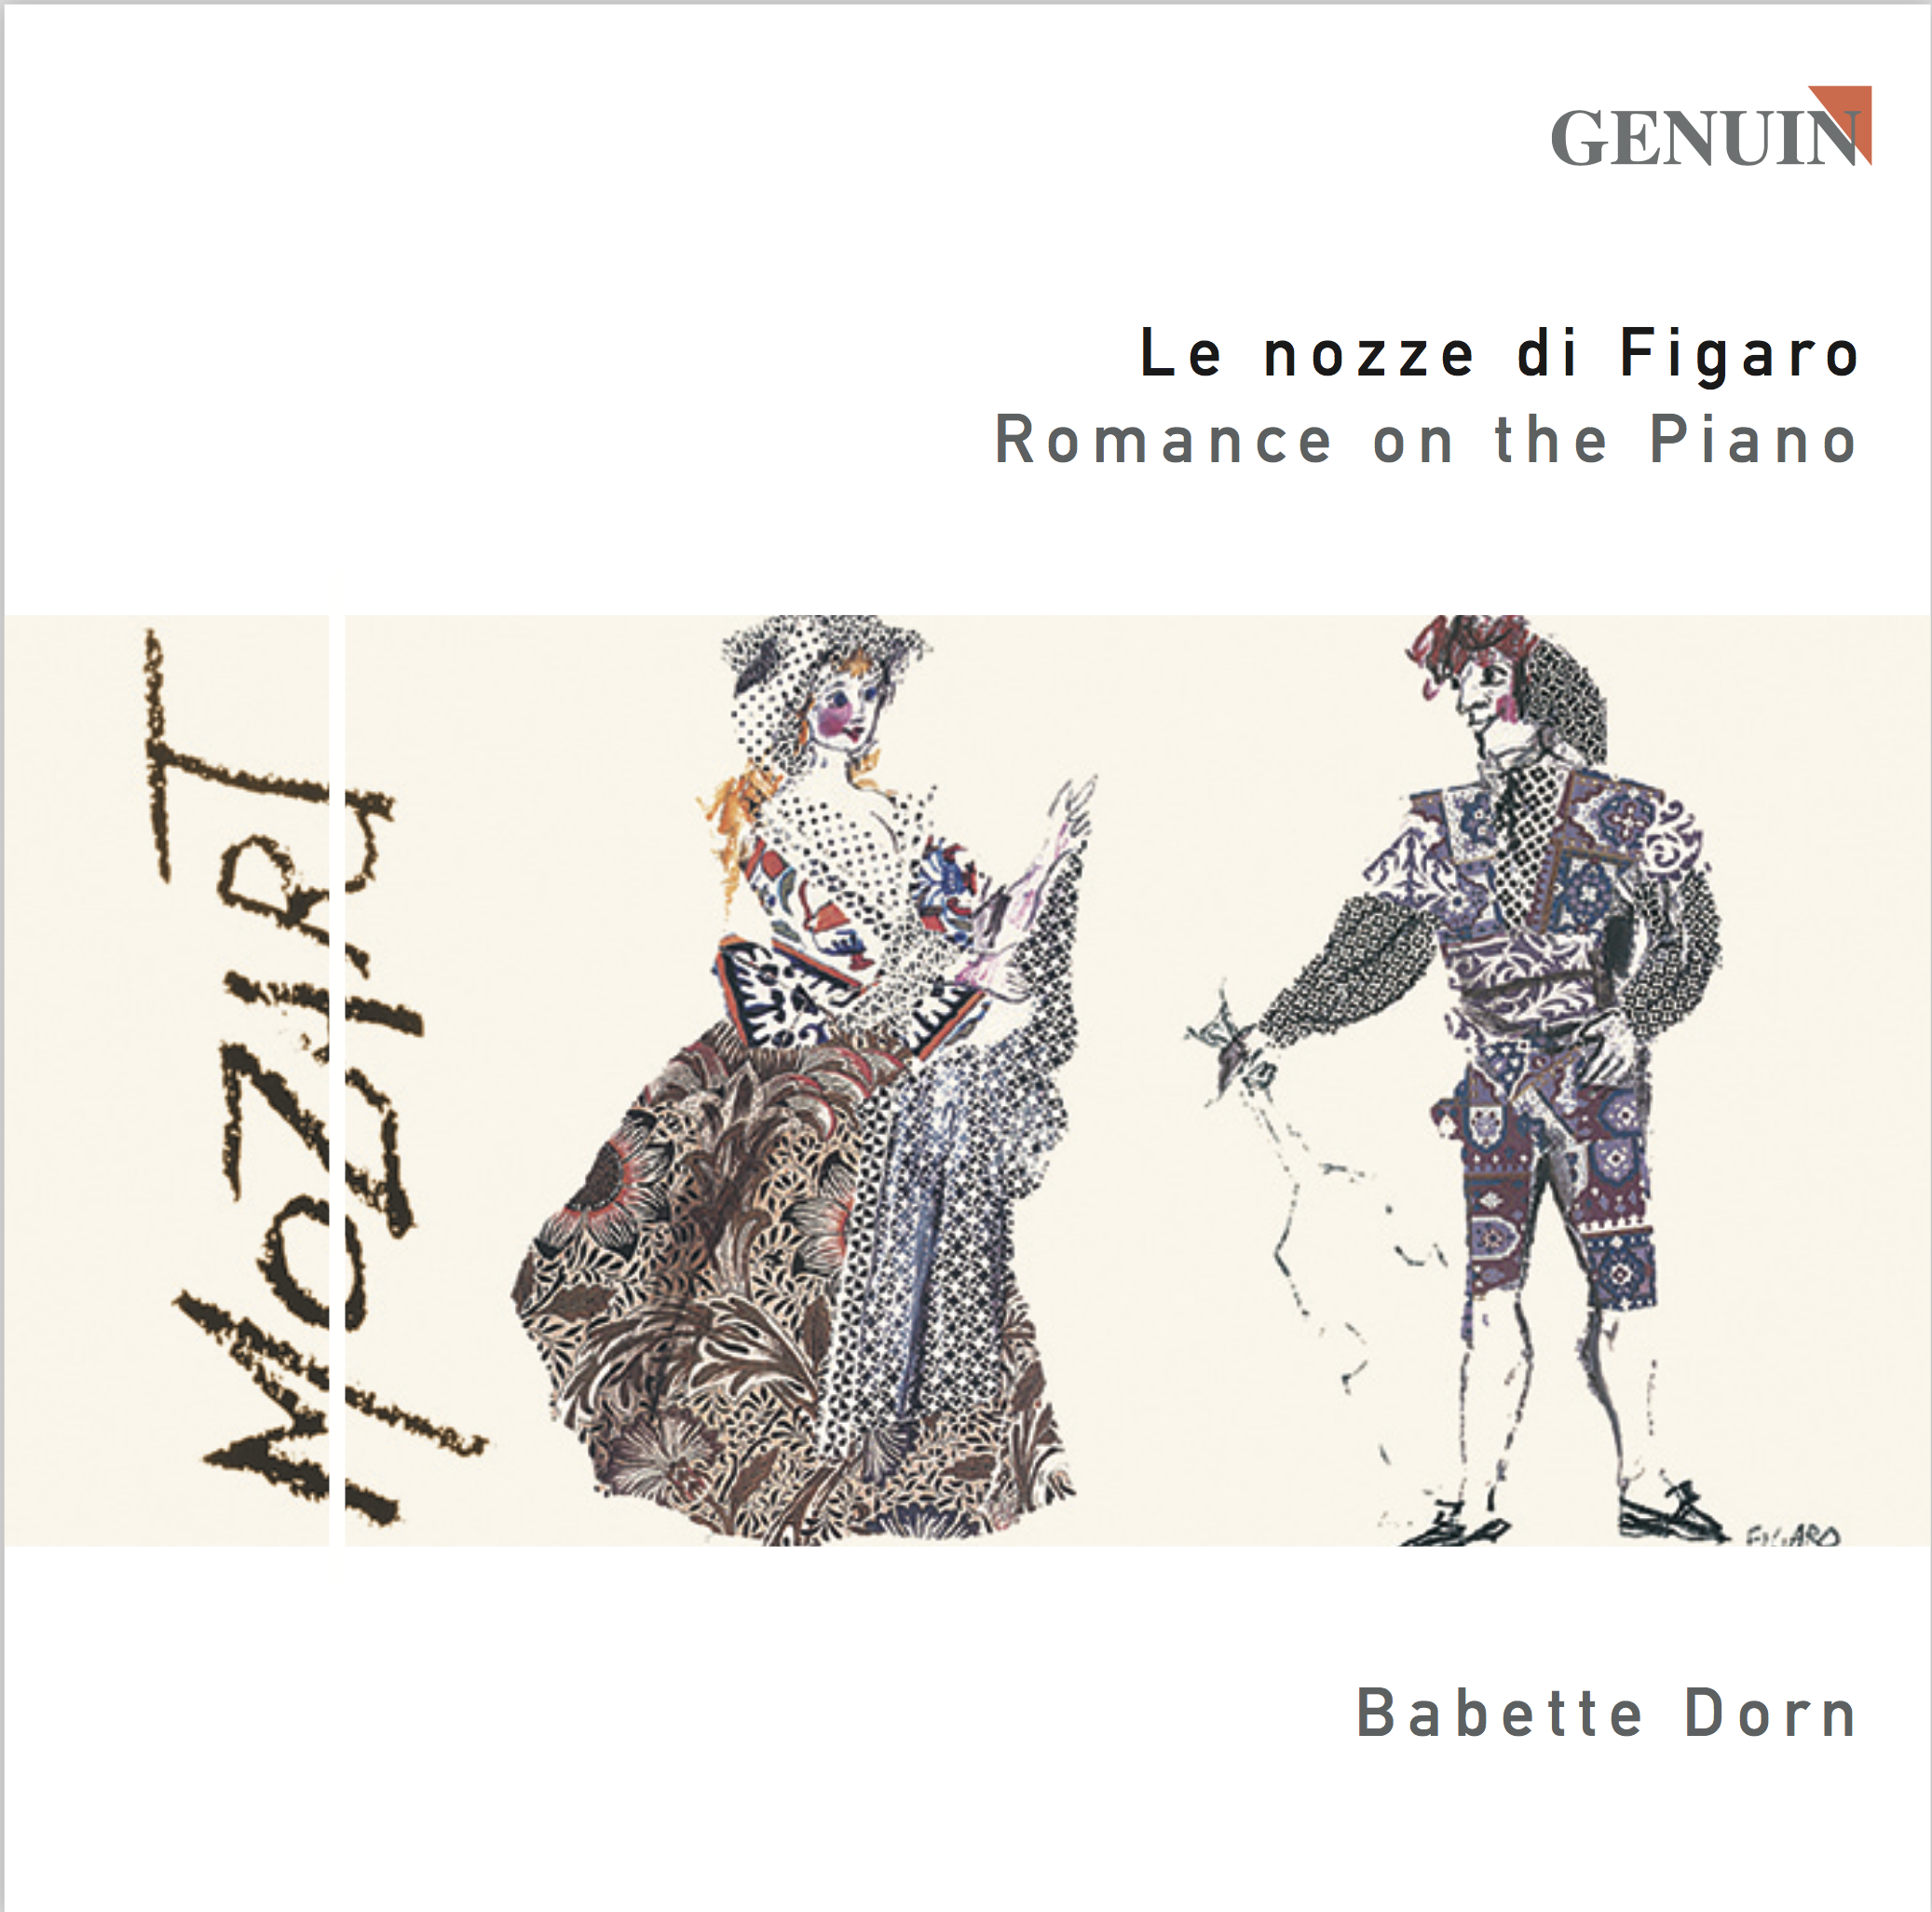 Mozart: Le nozze di Figaro – Romance on the Piano